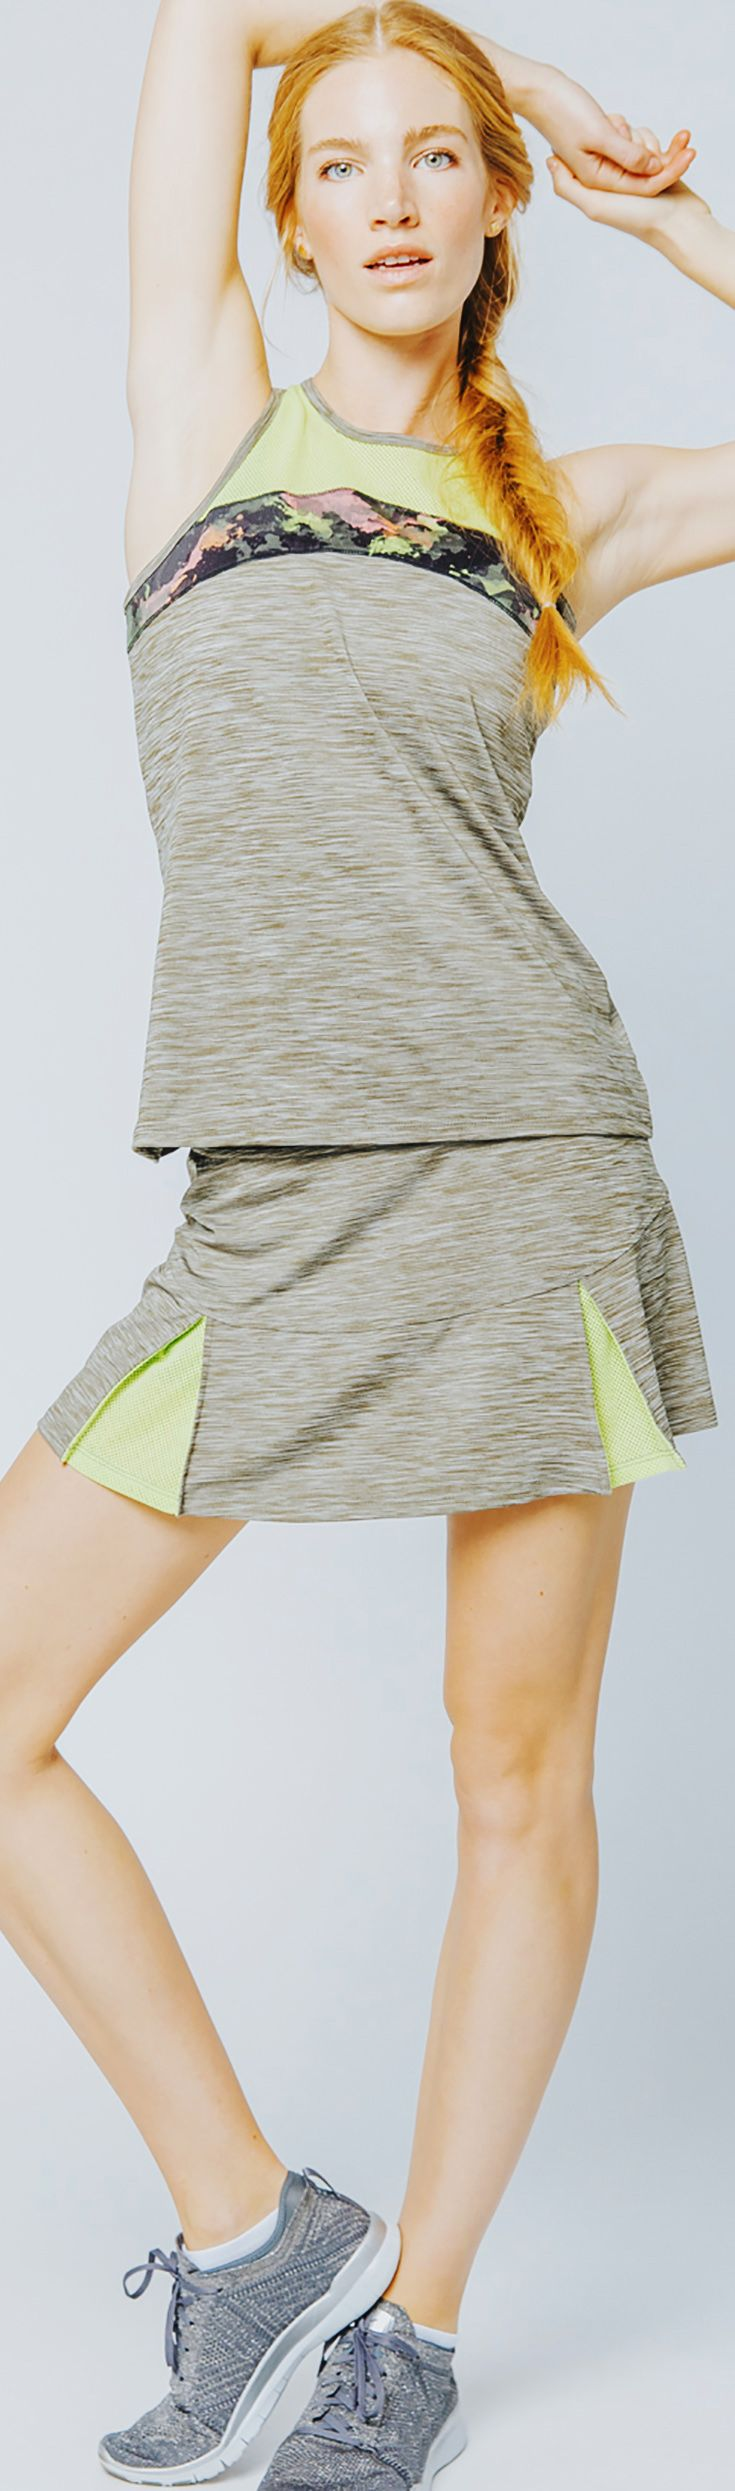 The Lija Carmel Horizon collection of premier women's tennis and training apparel offers great looking performance styles of skirts, tanks, and tennis outfits for your modern tennis look. Shop the collection at MidwestSports.com.